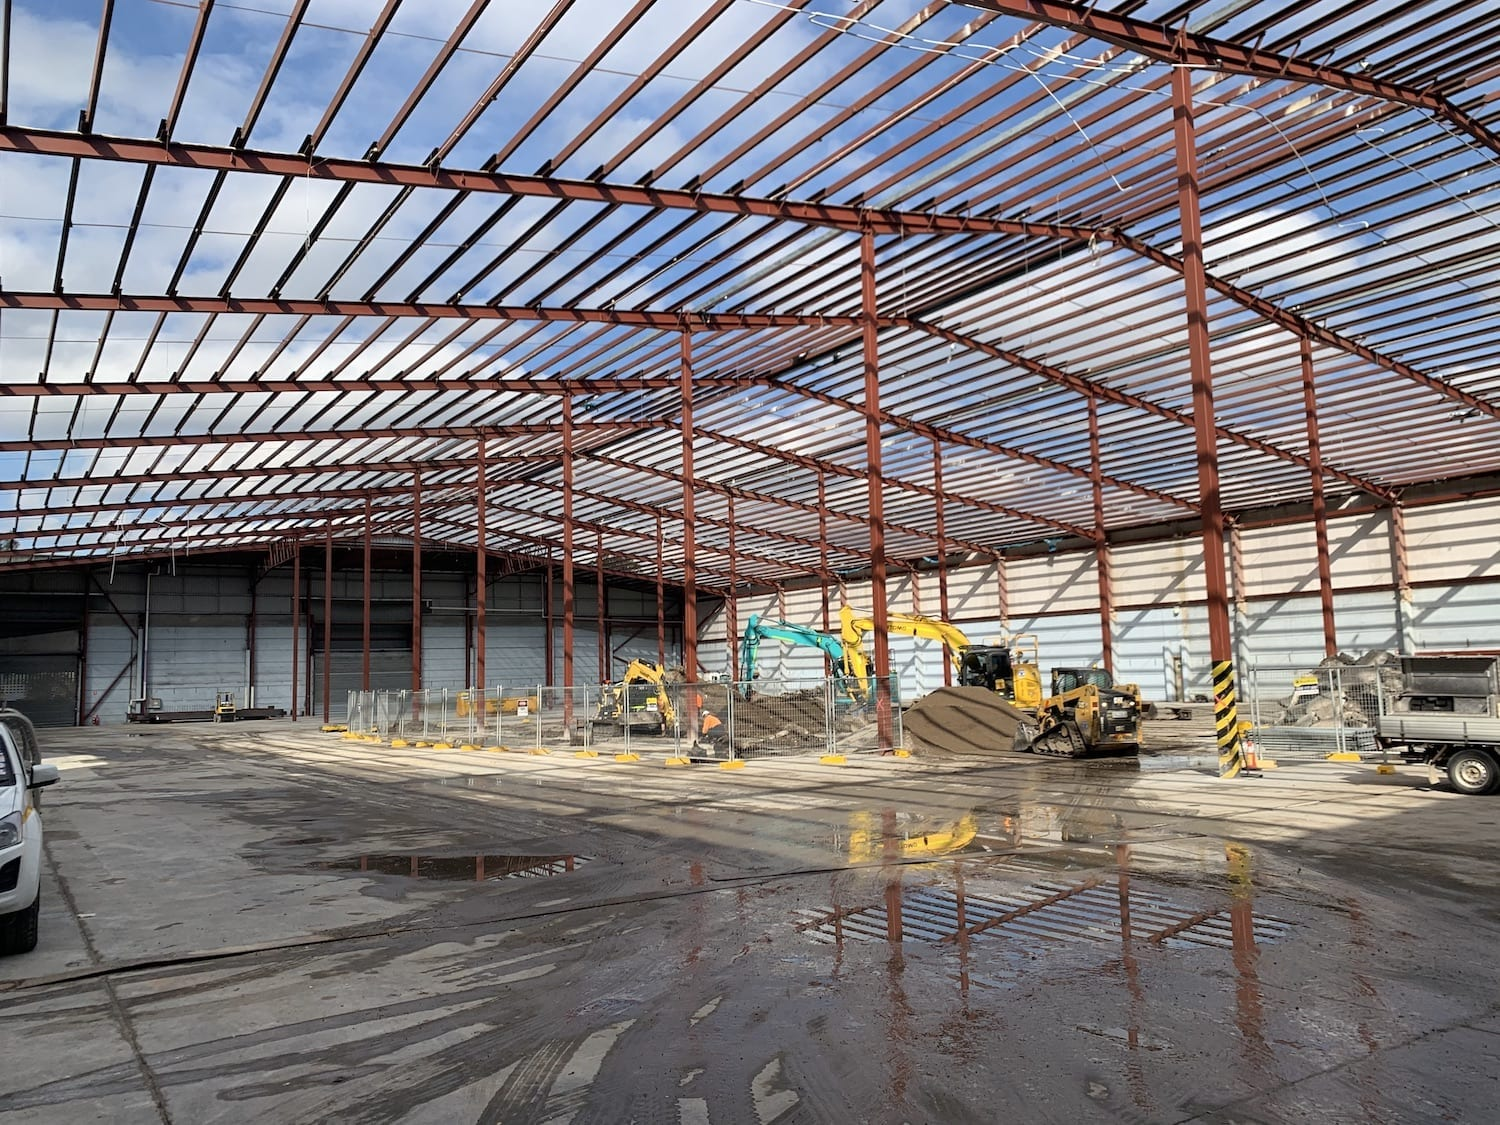 Commercial Roofing Services roofing